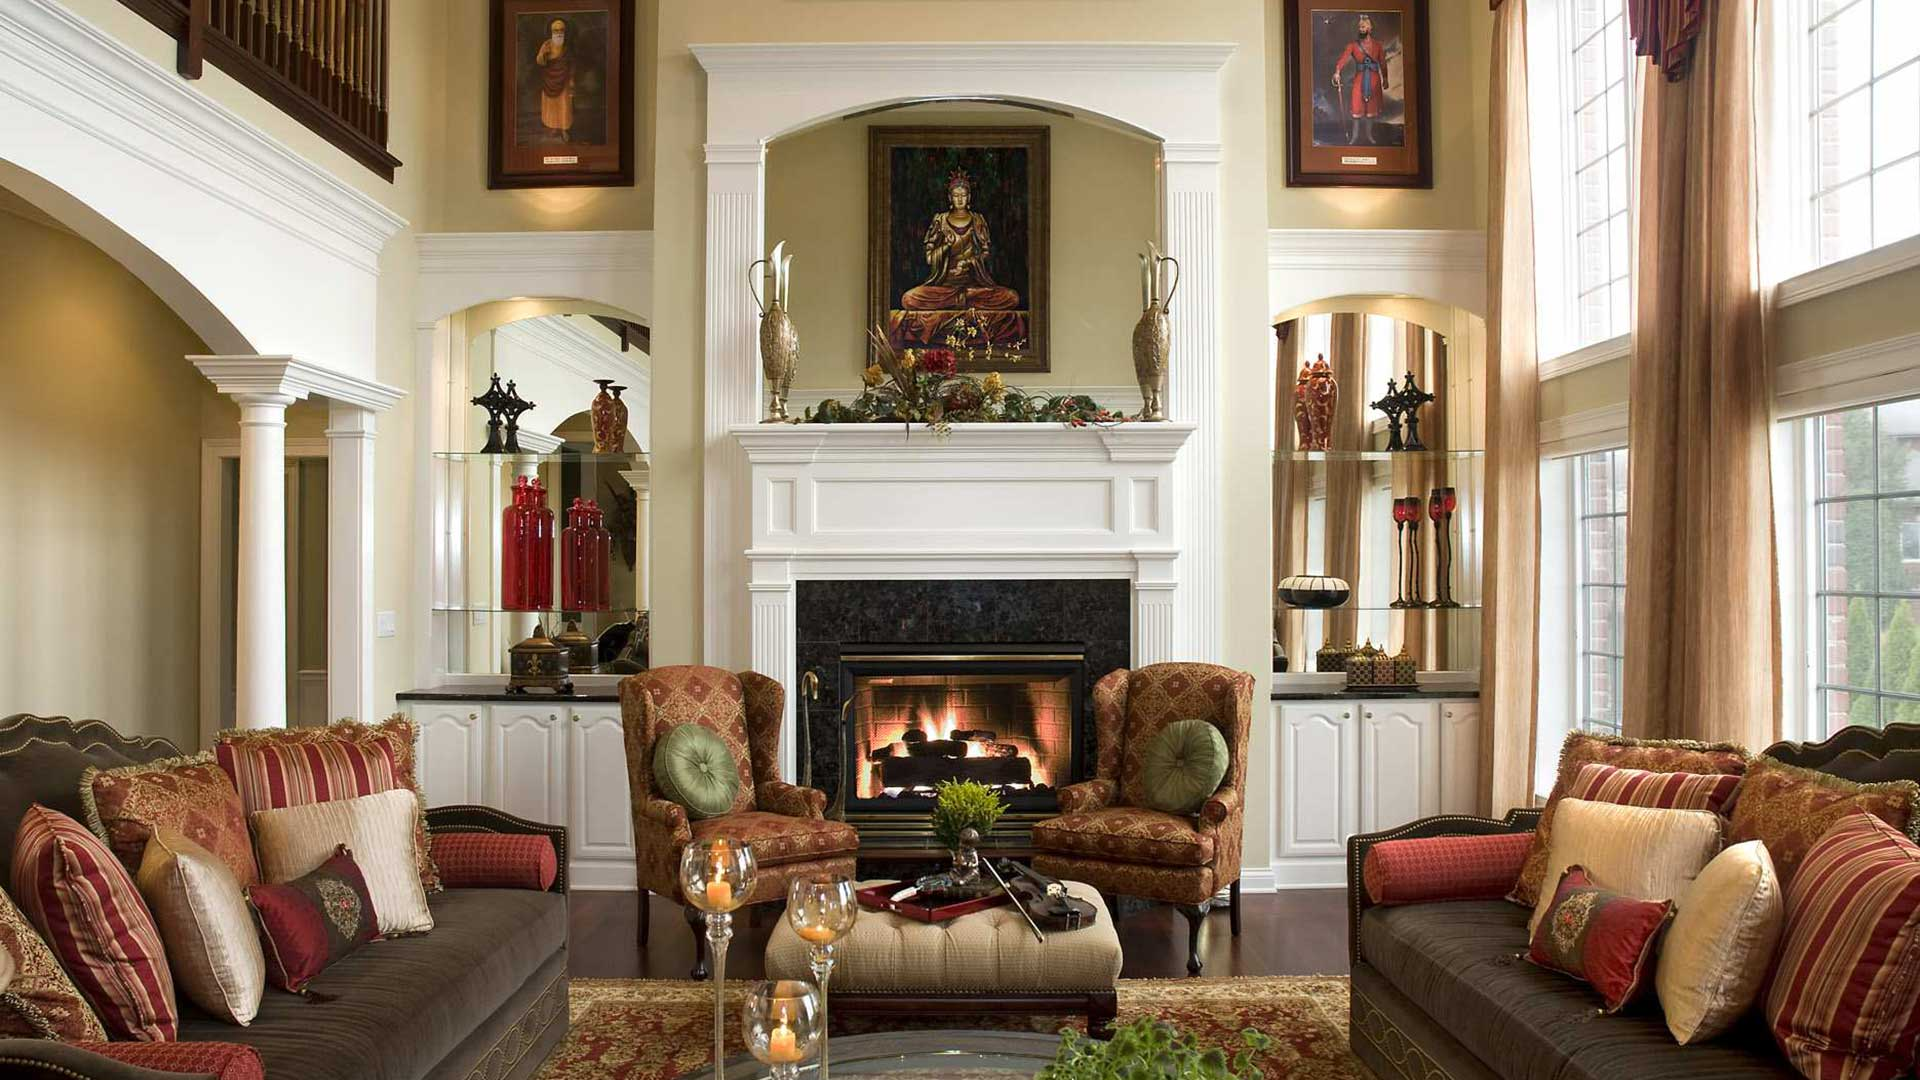 Victorian house sitting room with fabric furniture and  fireplace in the center.